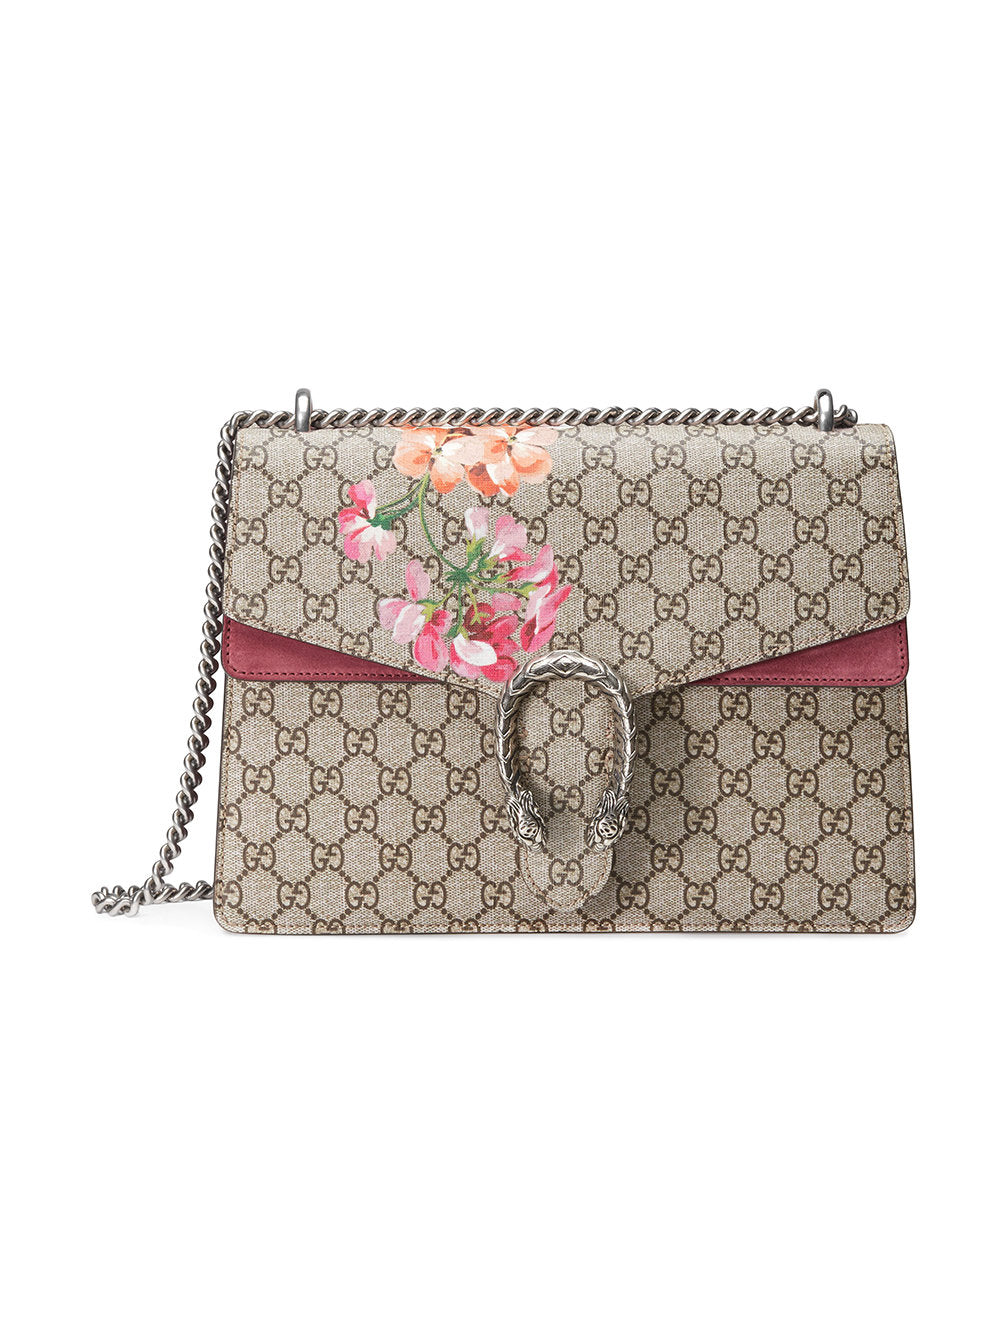 c93c9f67fcd77e Gucci Dionysus Handbag Blooms Print GG Coated Canvas Medium We Offer You:  $925